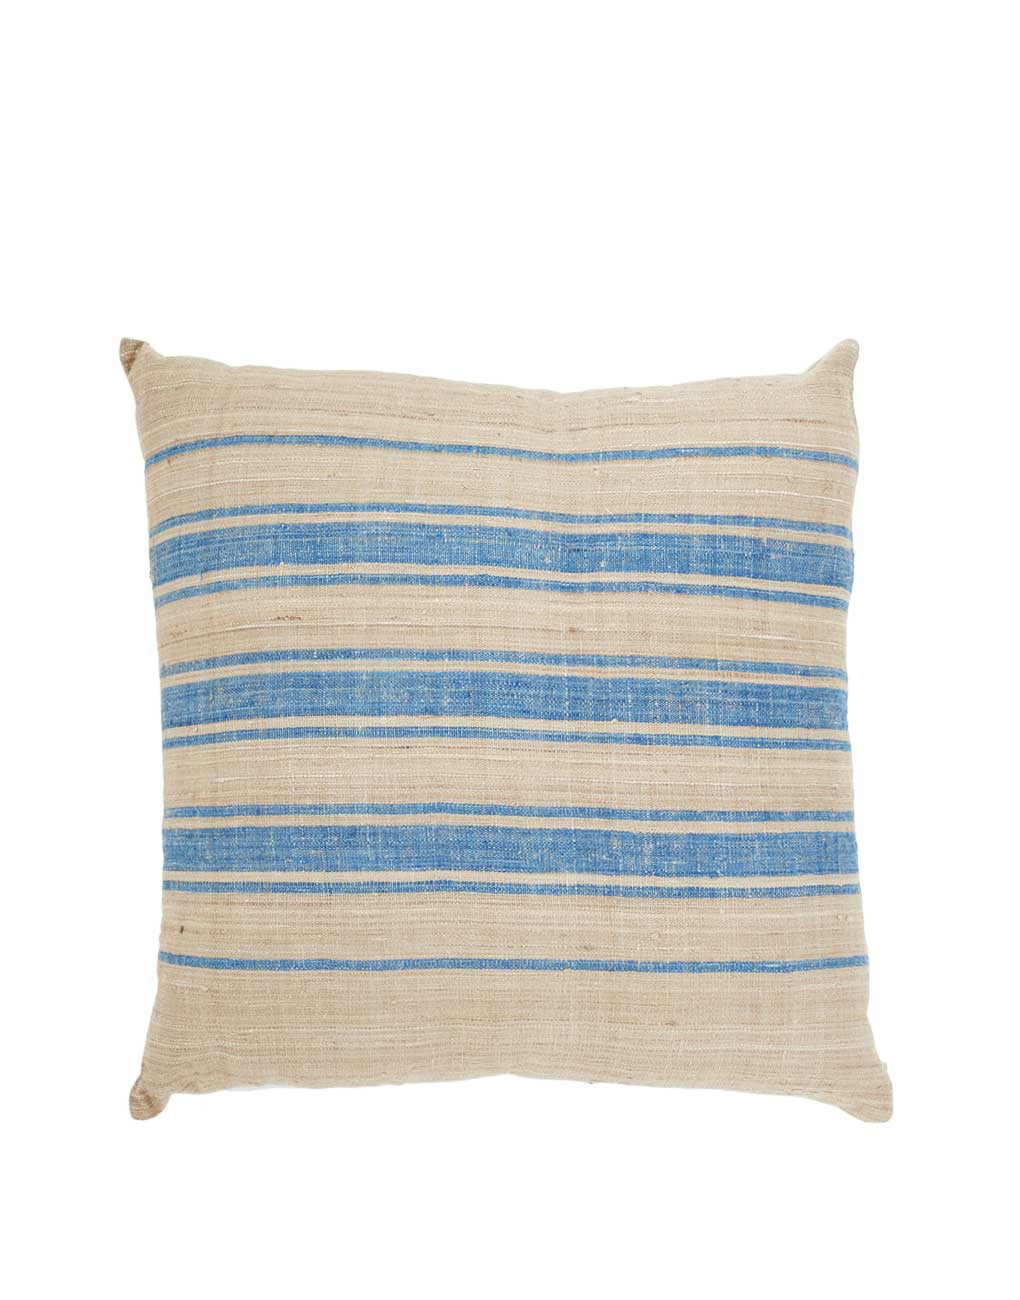 Fair Trade Handwoven Silk Tan & Blue Pillow